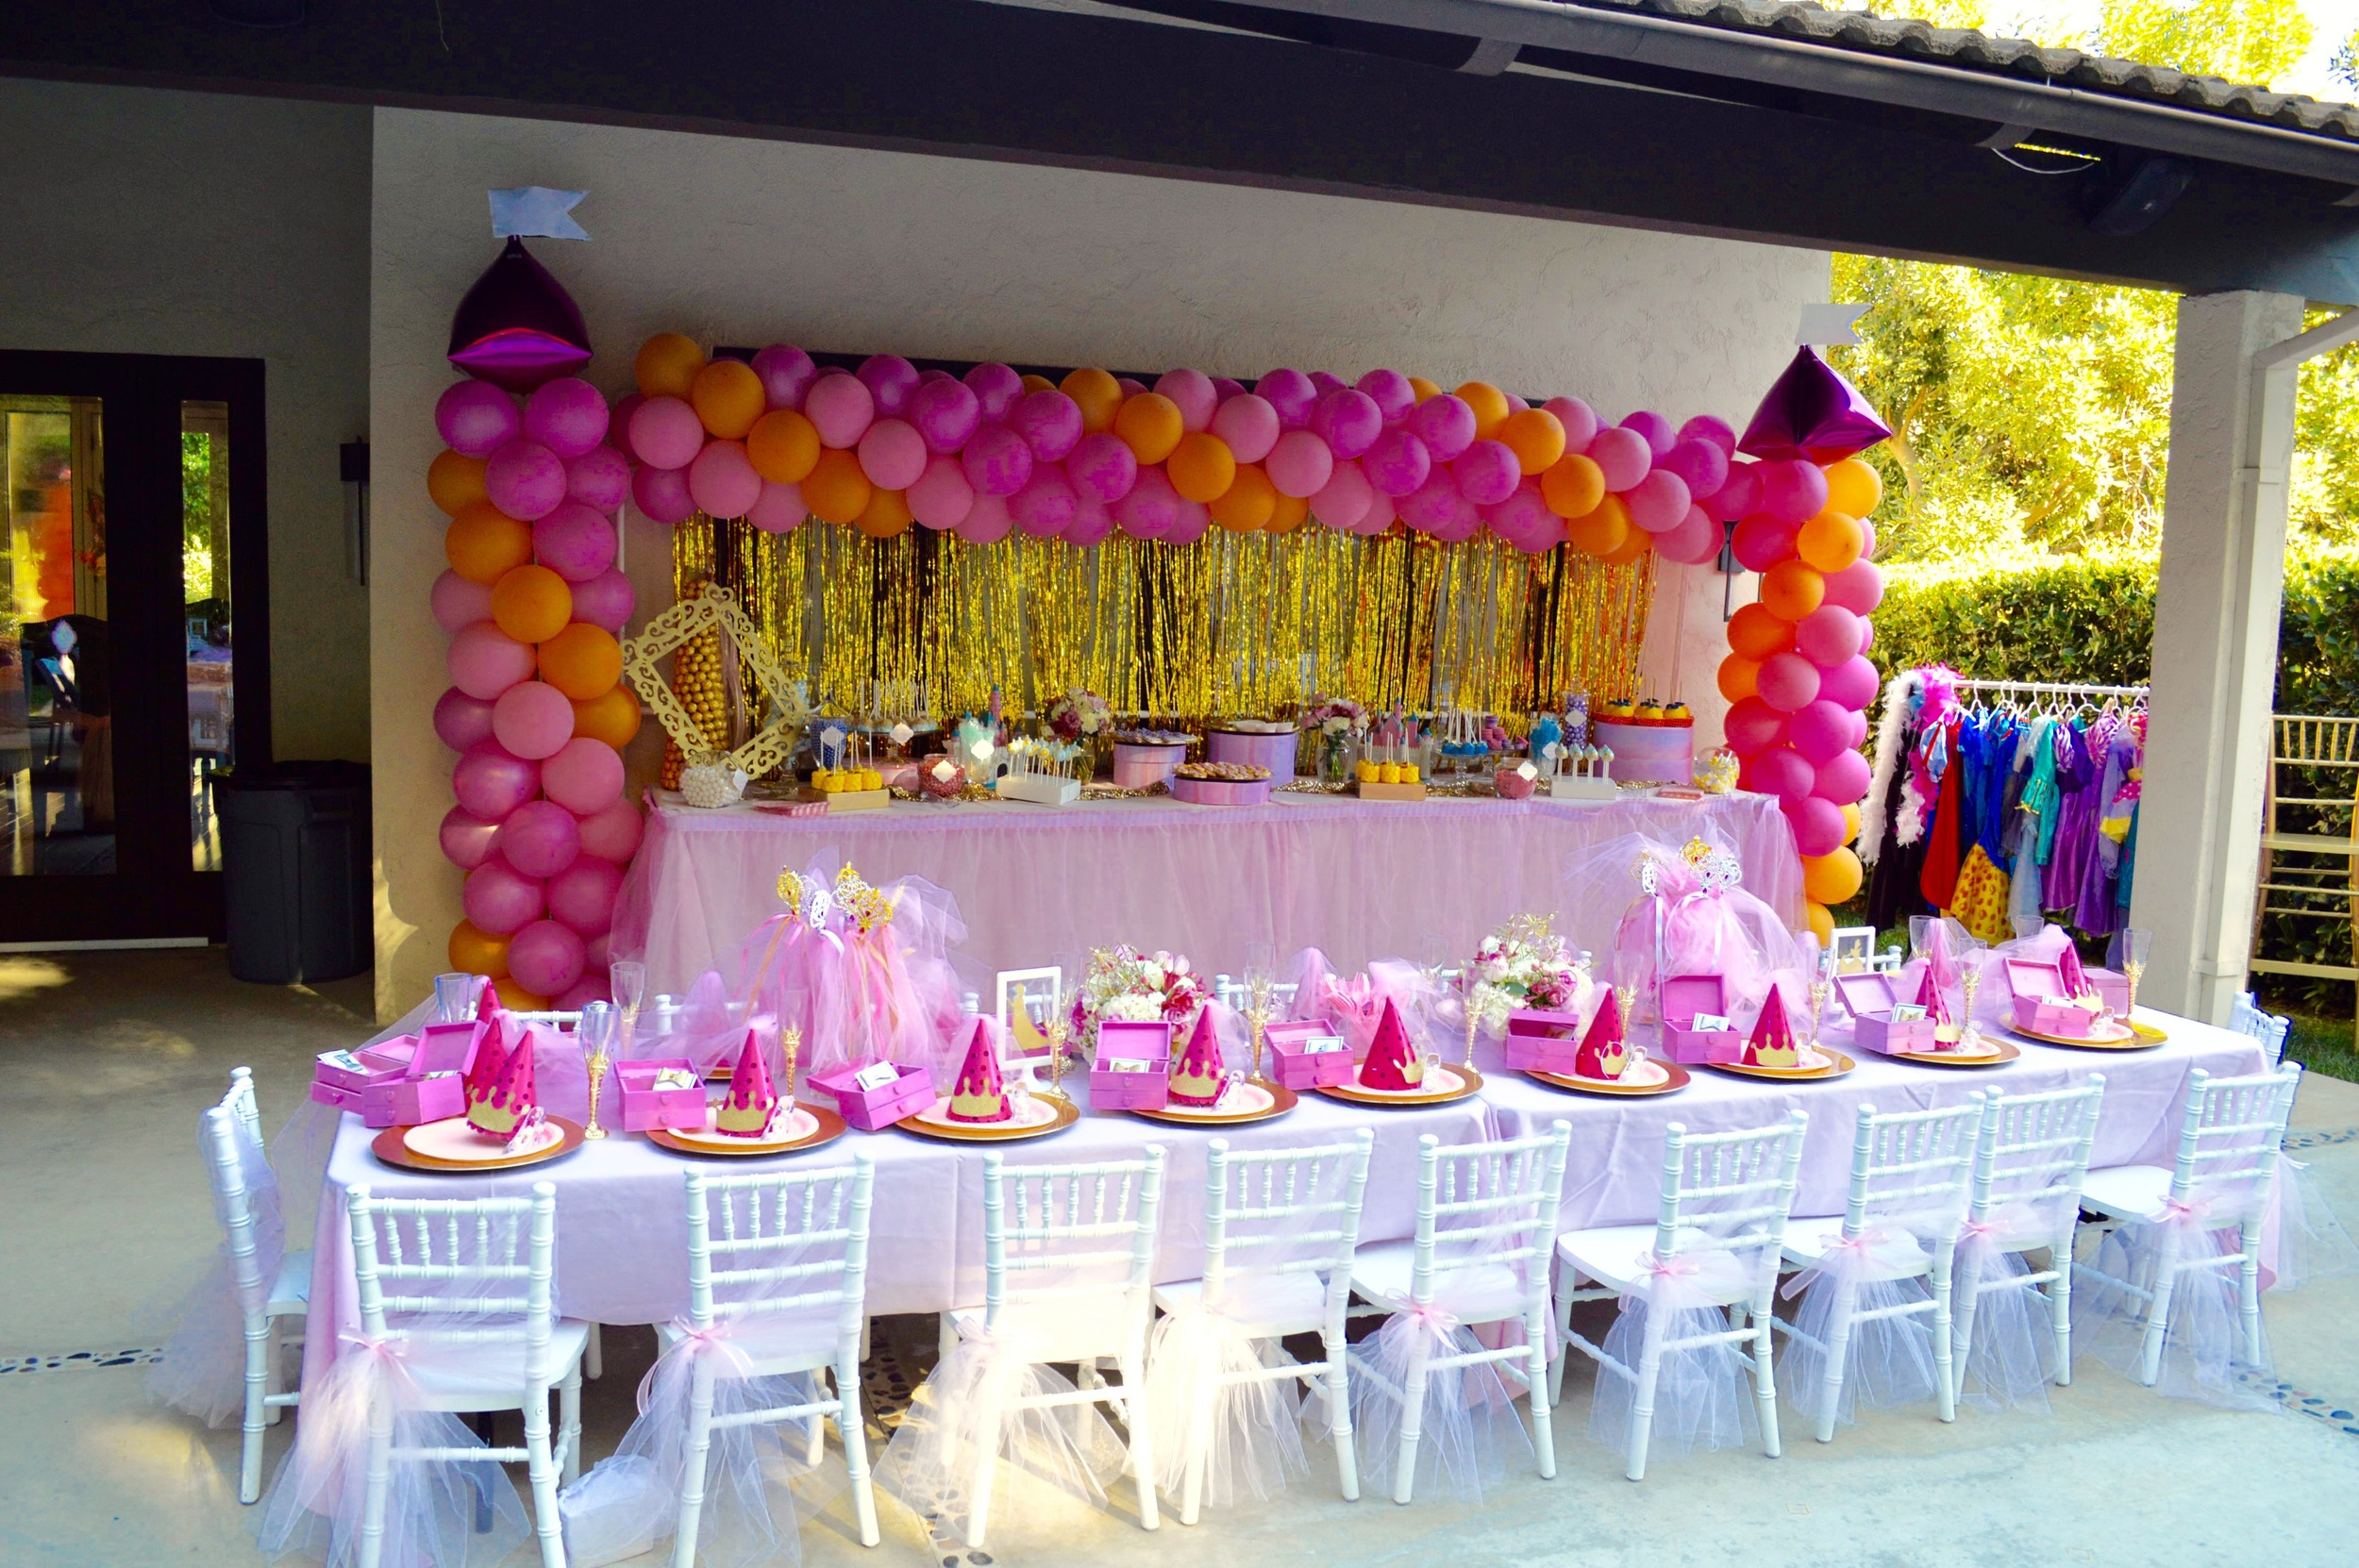 The dessert table was 12 feet long and feature a gold mylar shimmer backdrop paired with a Balloon arch by  Total Package Balloons  by Carolyn Baker.